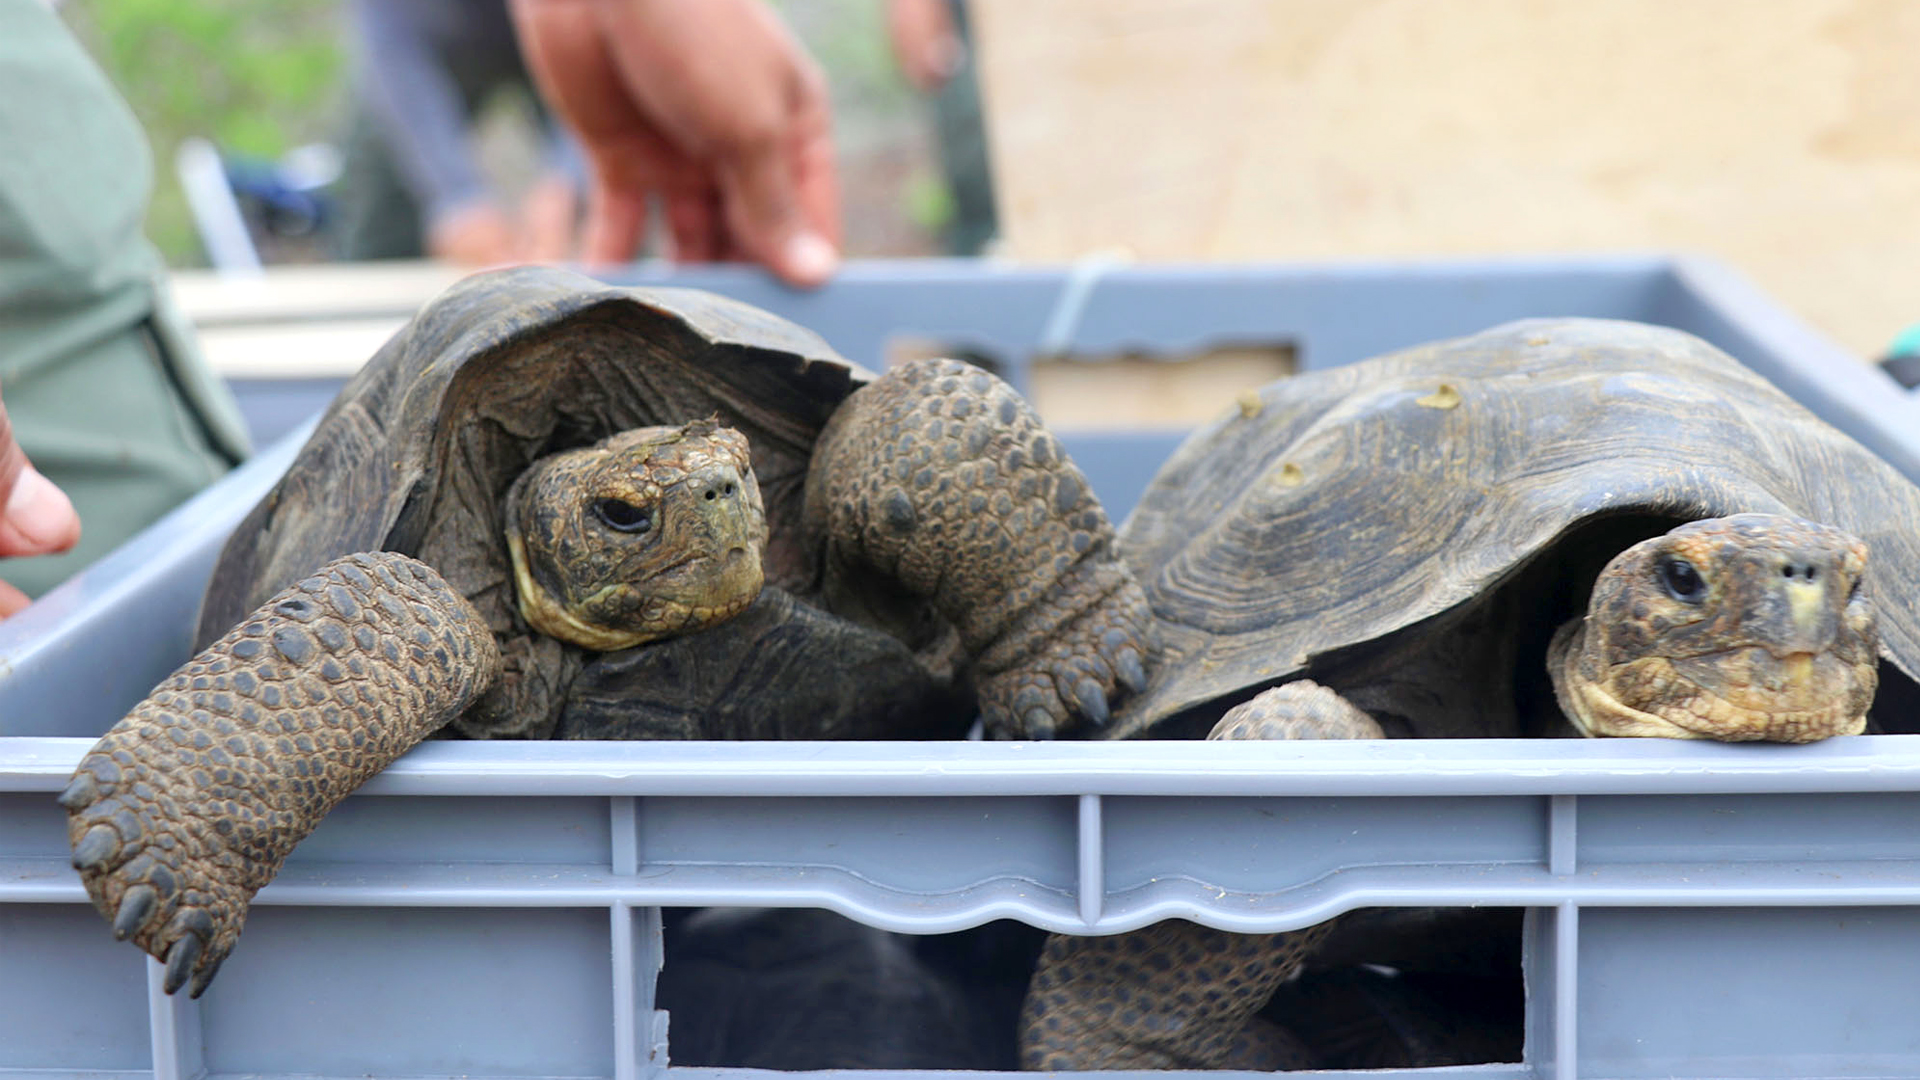 VIDEO: Coming Out Of Their Shells: Extinct Wild Giant Tortoises Return To The Galapagos Islands